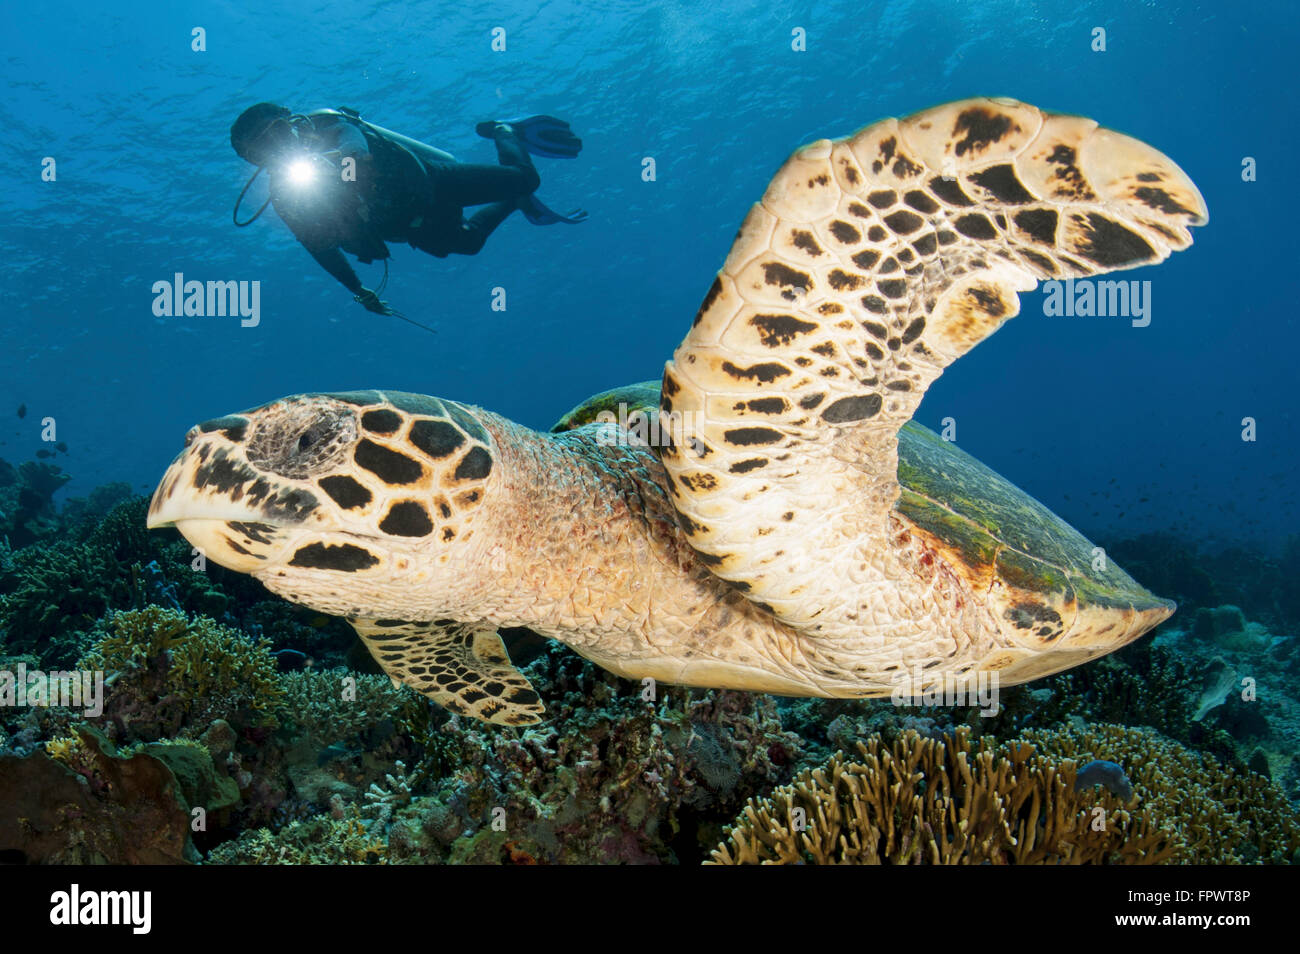 A diver swims over a Komodo reef with a hawksbill sea turtle off of Indonesia. - Stock Image